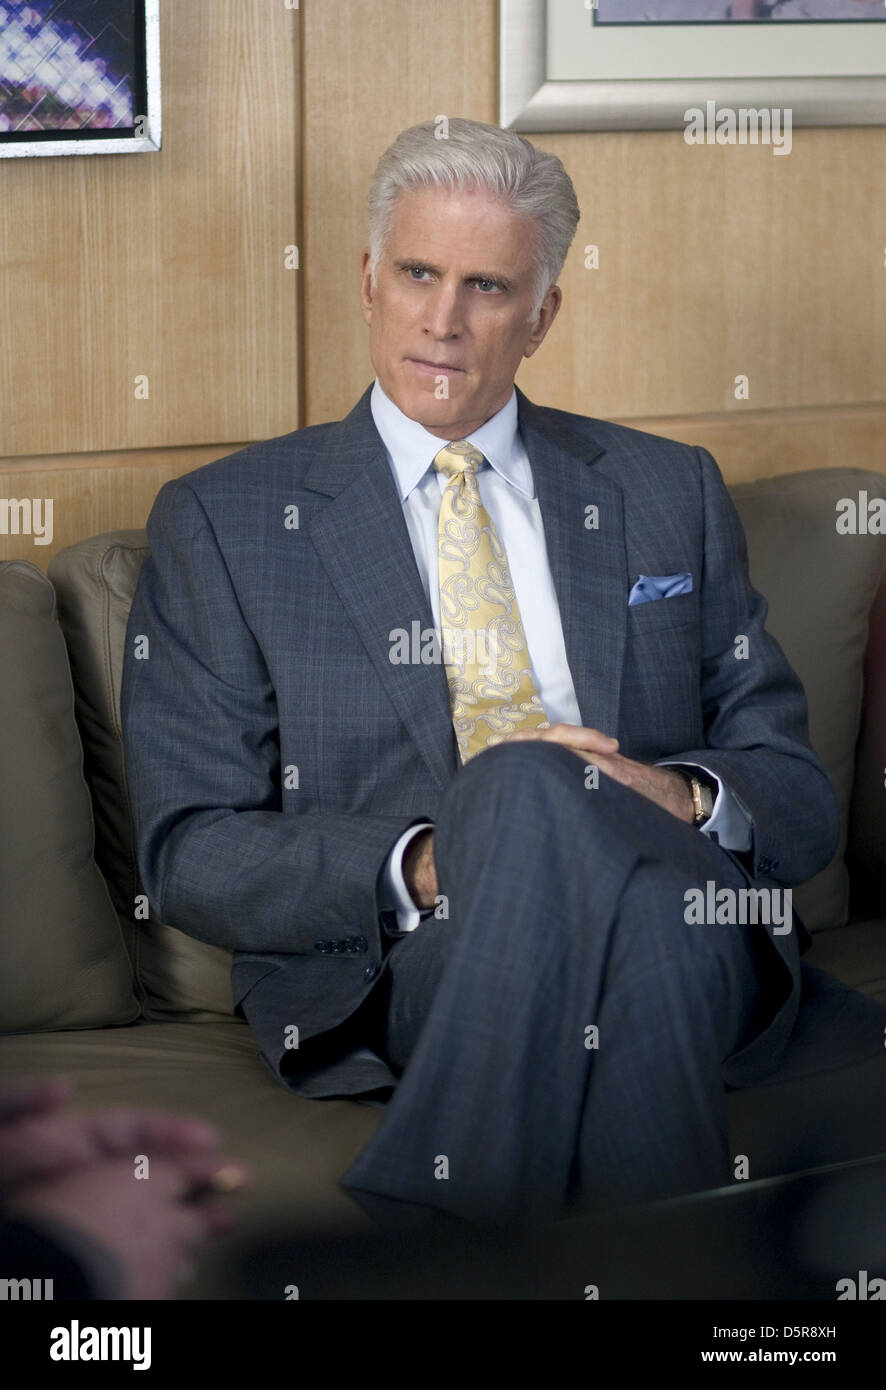 Ted Danson Bored To Death 2009 Stock Photo Alamy